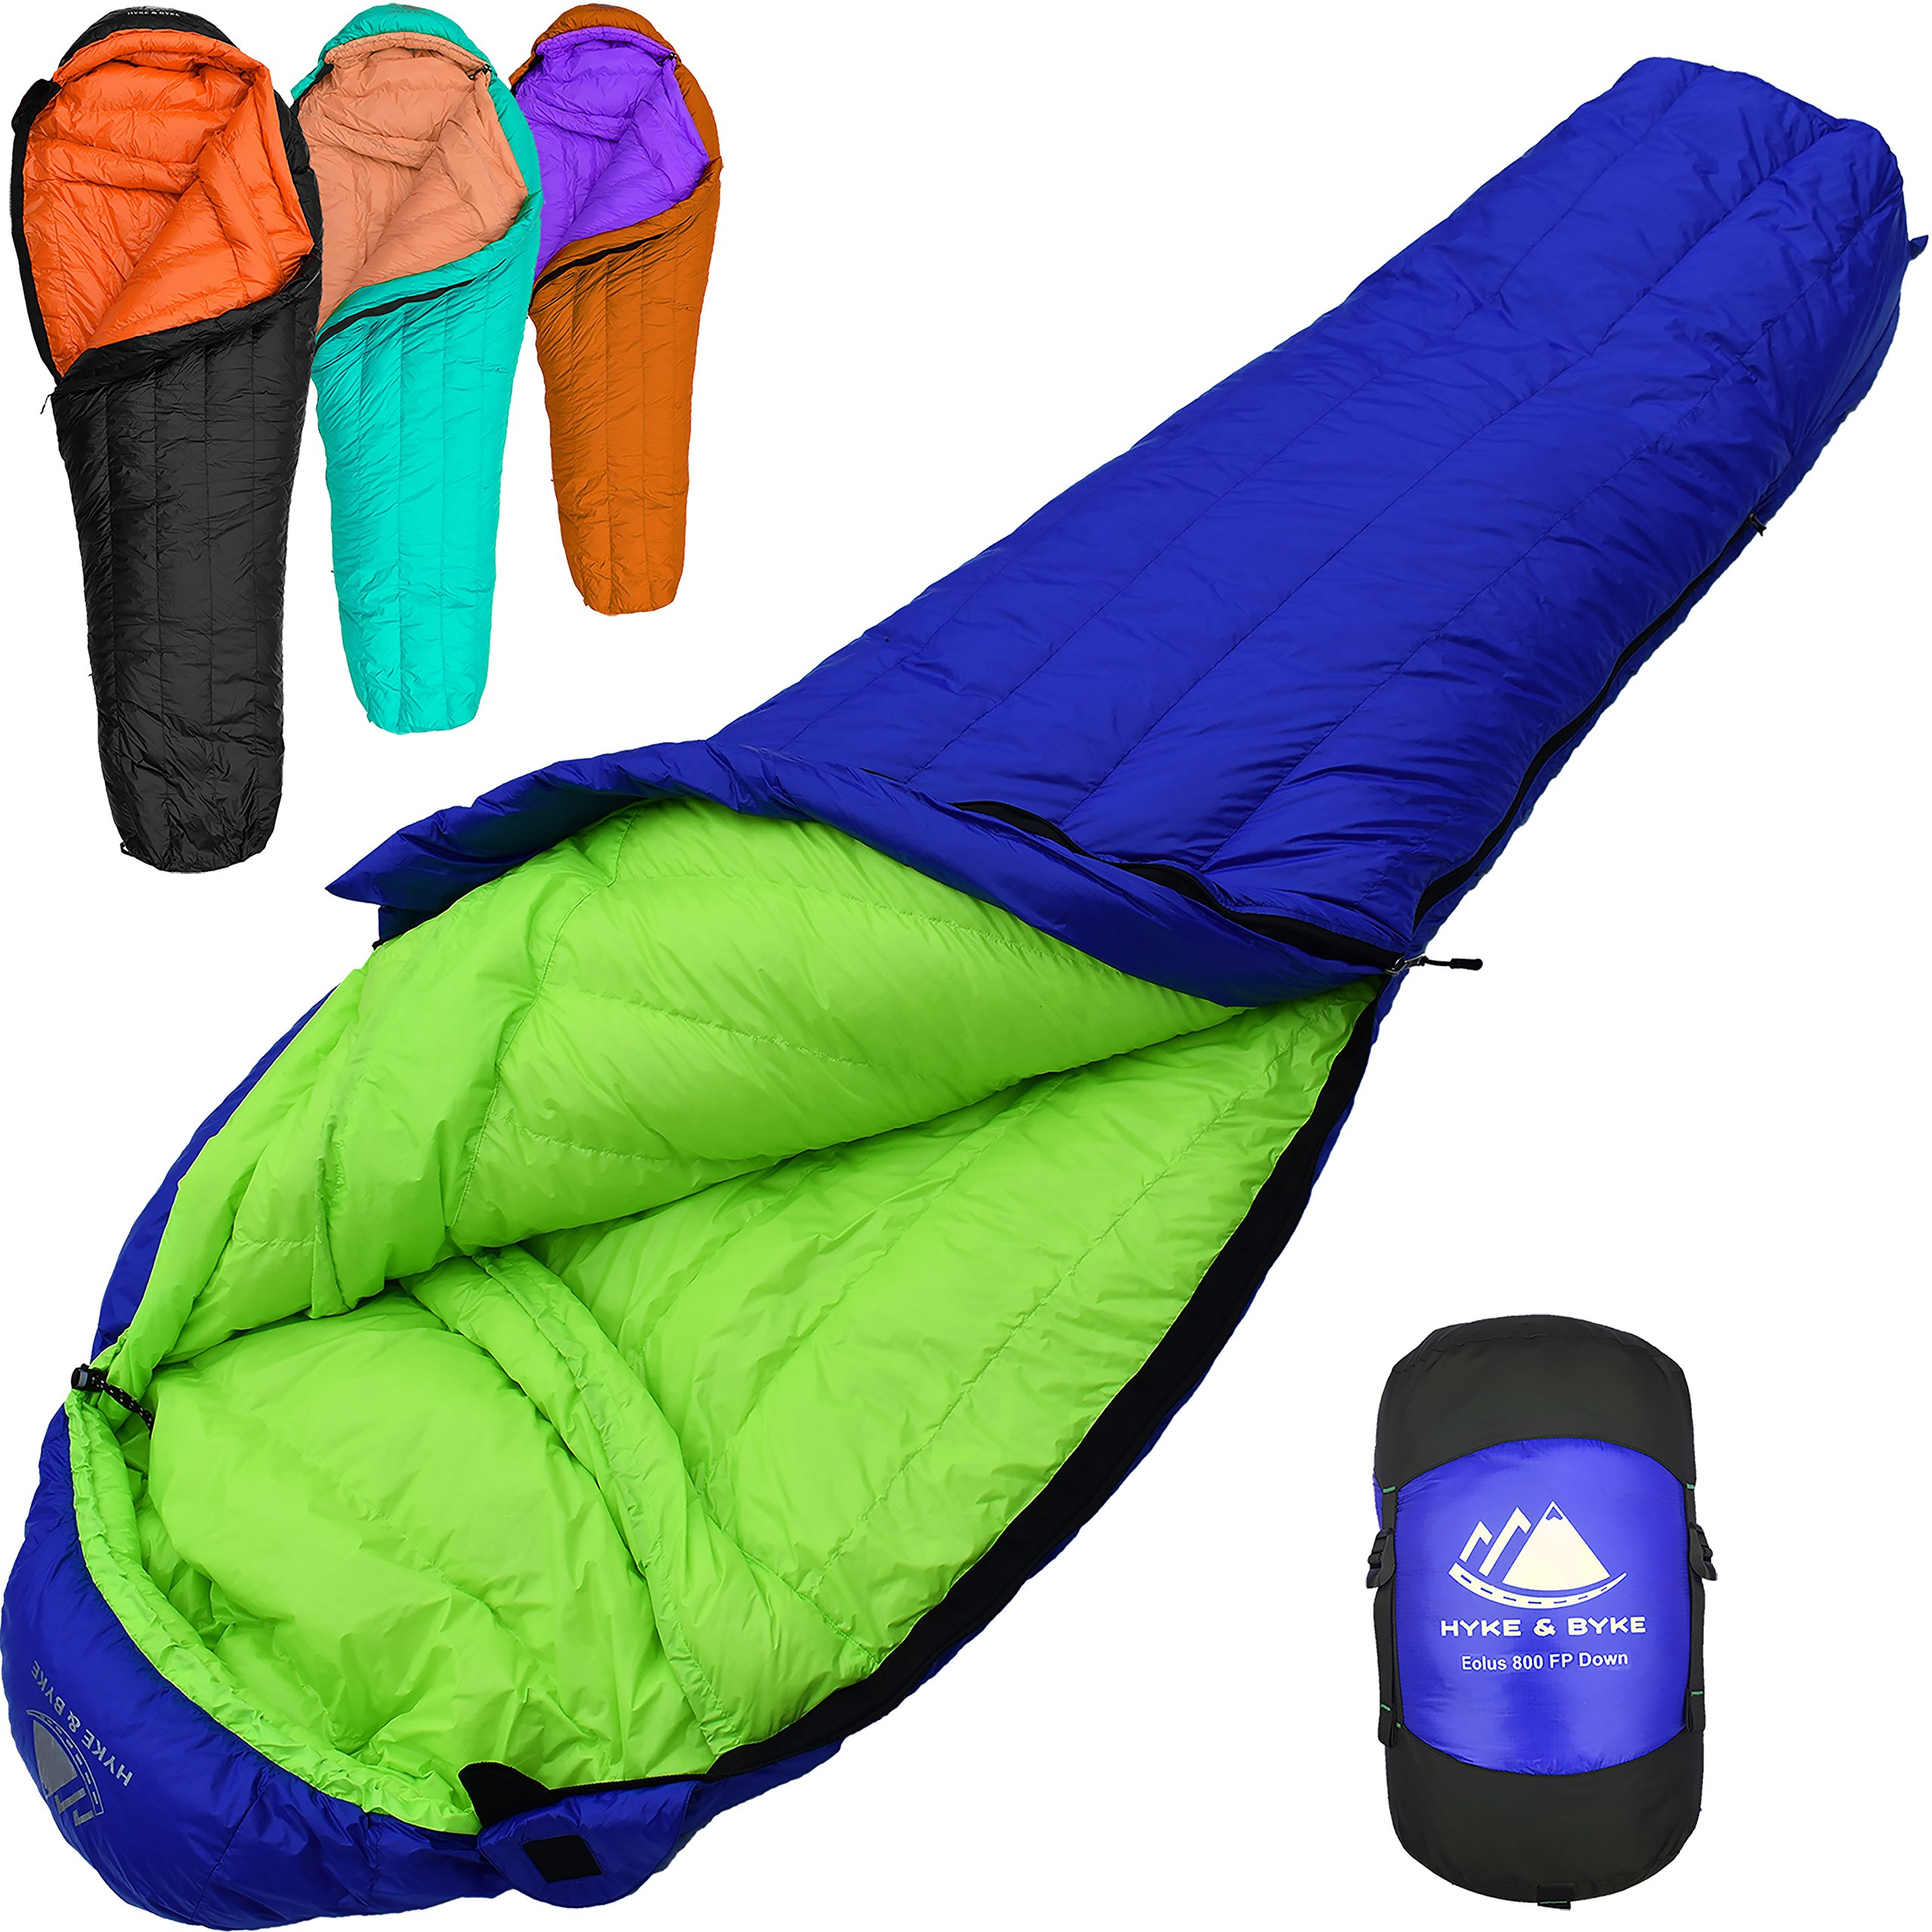 800 Fill Power Goose Down Sleeping Bag for Backpacking - Eolus 15/30 Degree F Ultralight, Down Filled 3 Season Men's and Women's Lightweight Mummy Bags (30 Degree - Blue/Lime Green, Regular) by Hyke & Byke